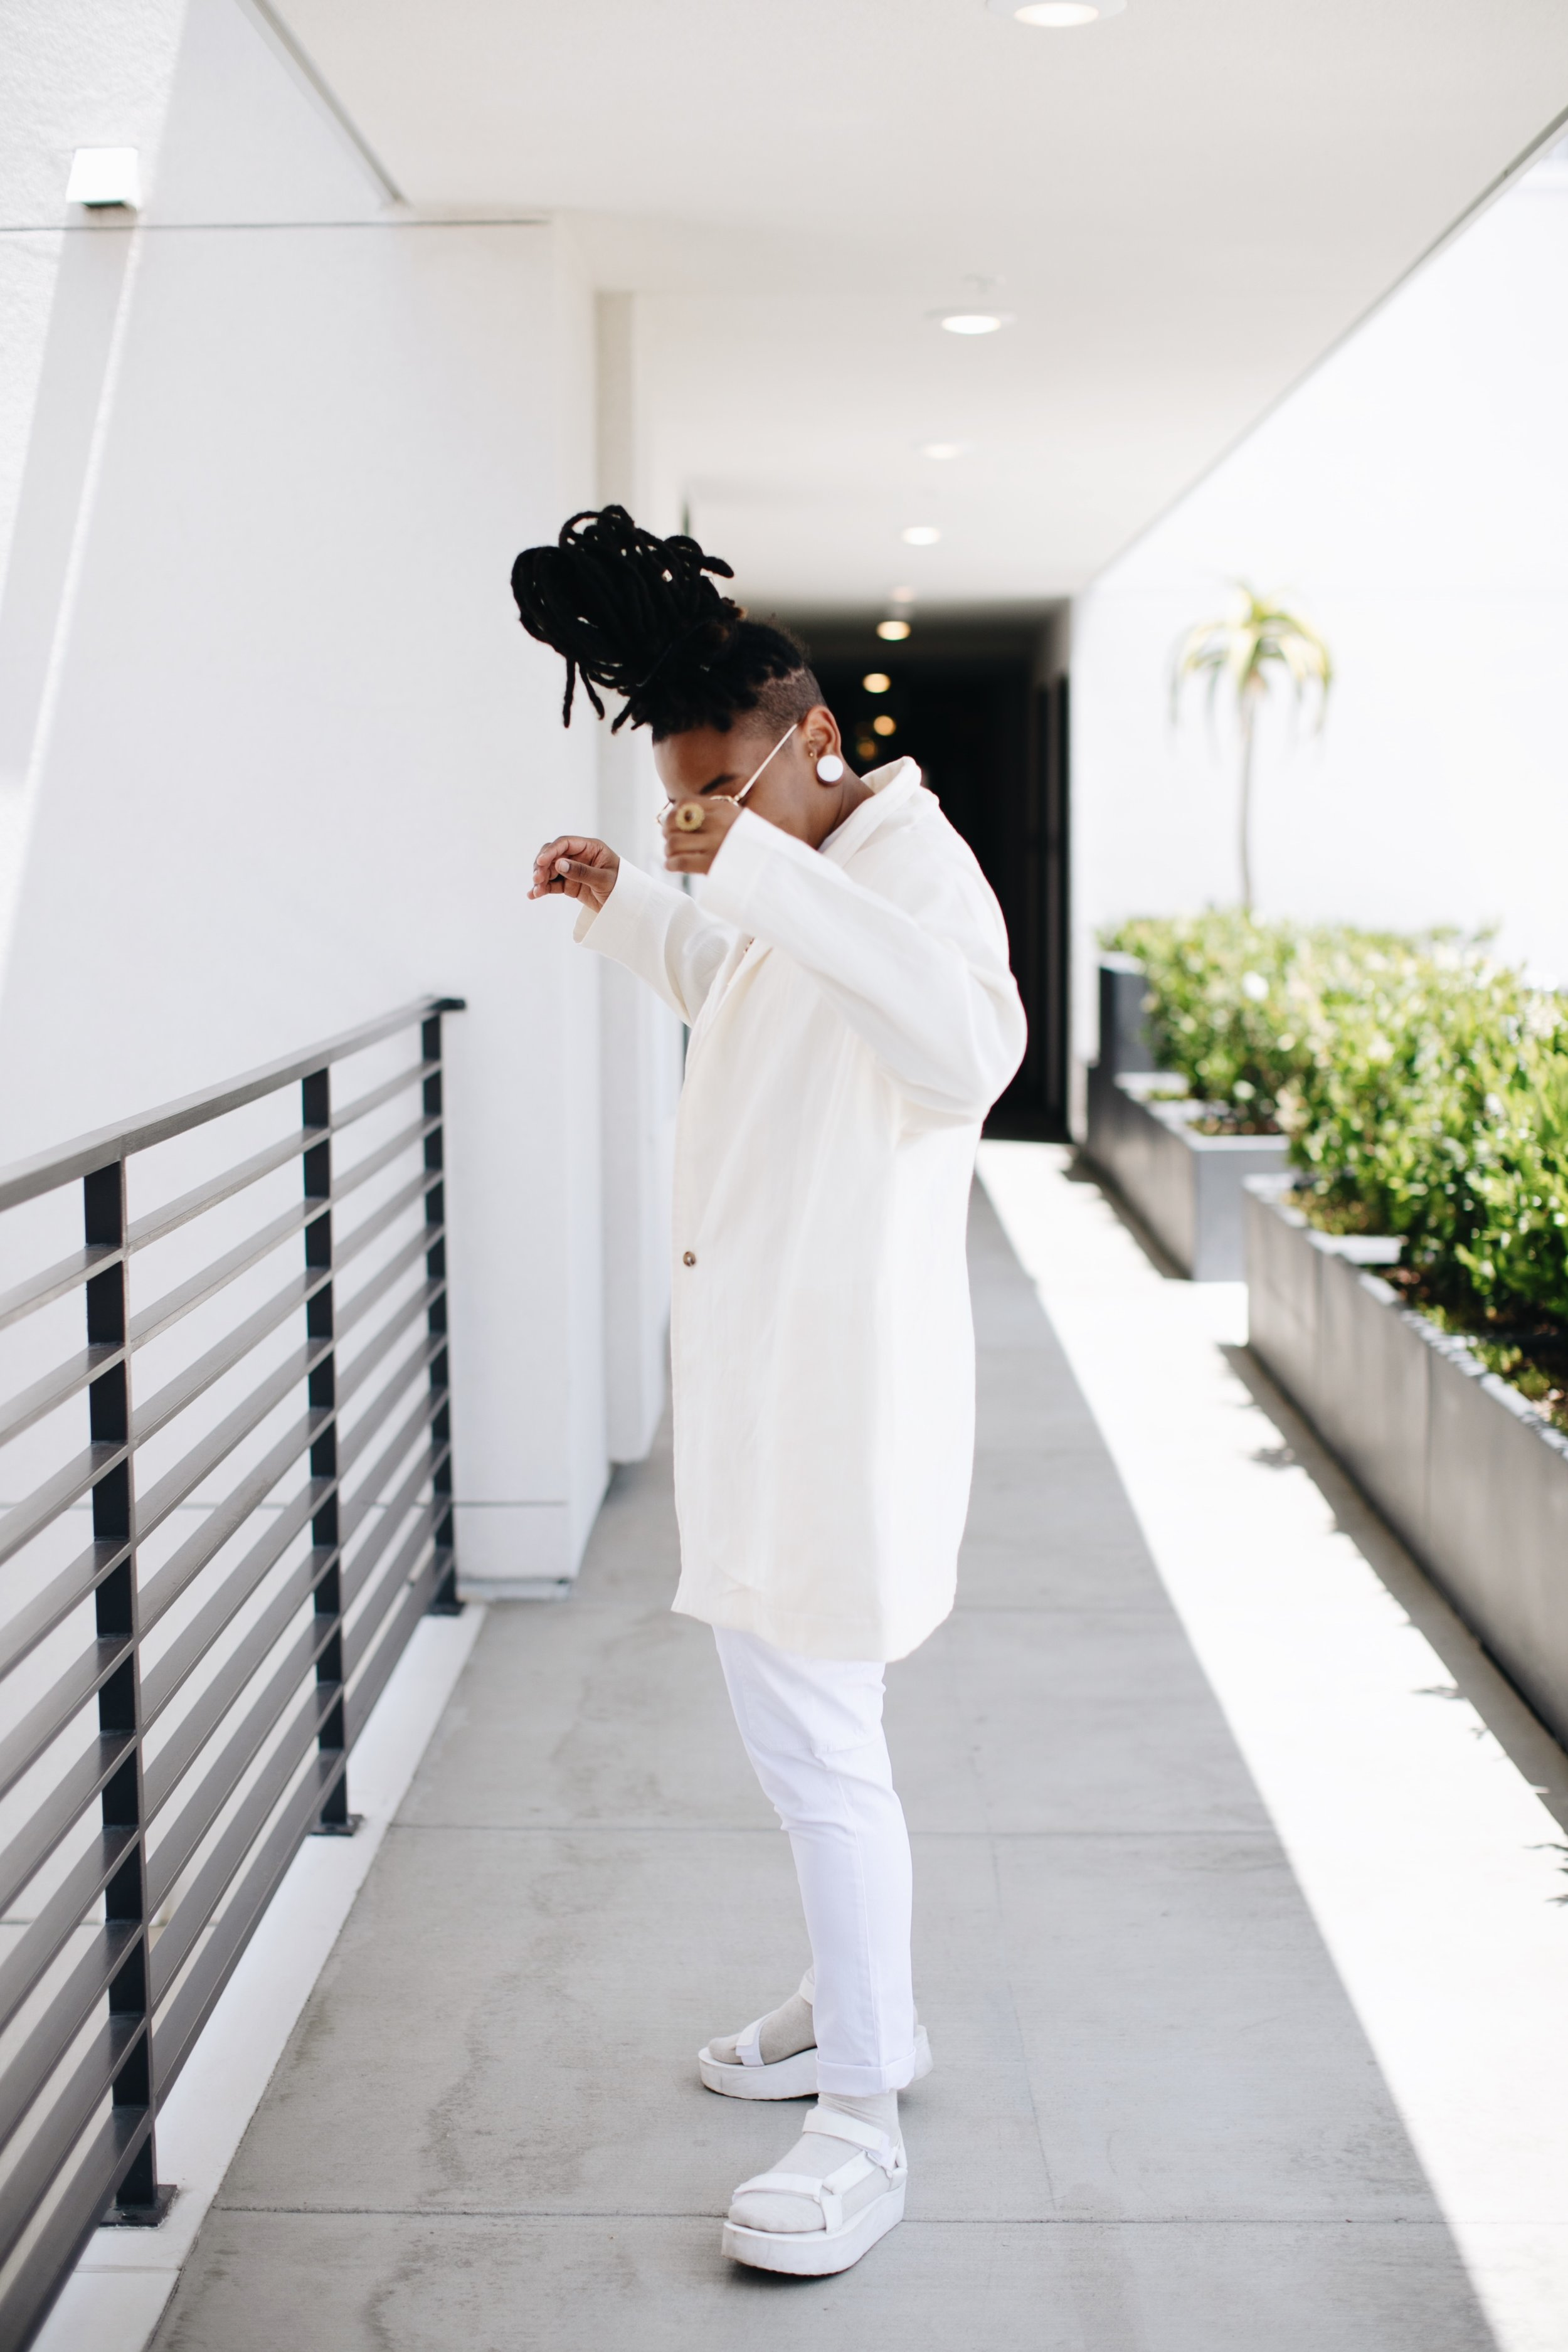 - I can't believe we're halfway through the year! I also can't believe this is my first blog post since I moved!With that being said, I'm really excited to share what I've been up to as well as one of my birthday fits! Woohoo